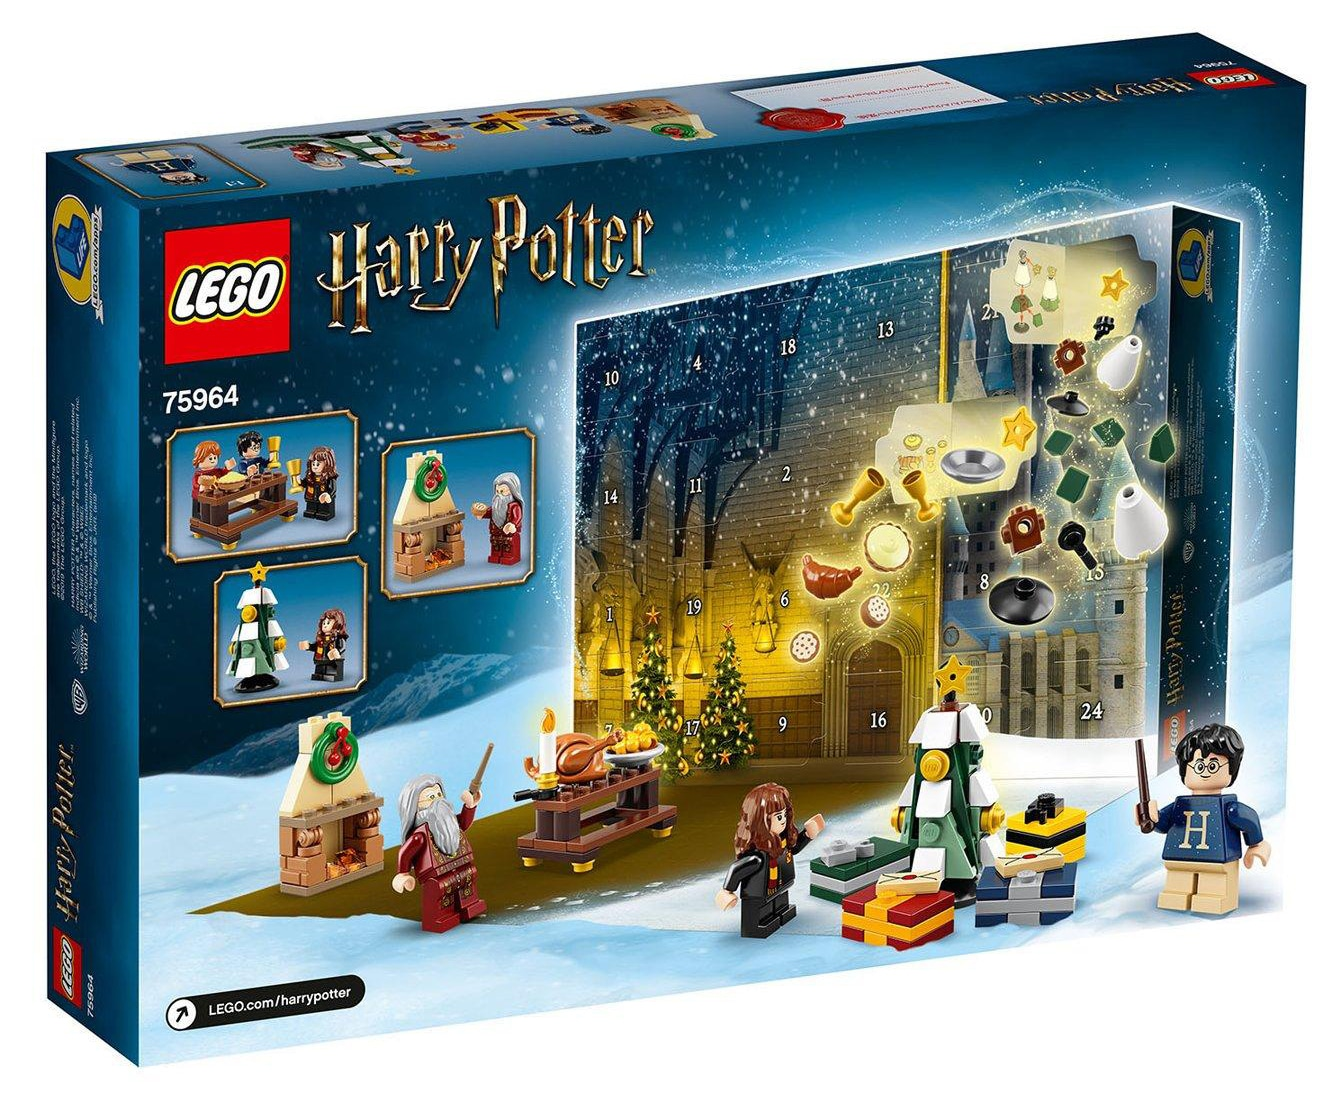 lego-harry-potter-adventskalender-box-75964-back zusammengebaut.com